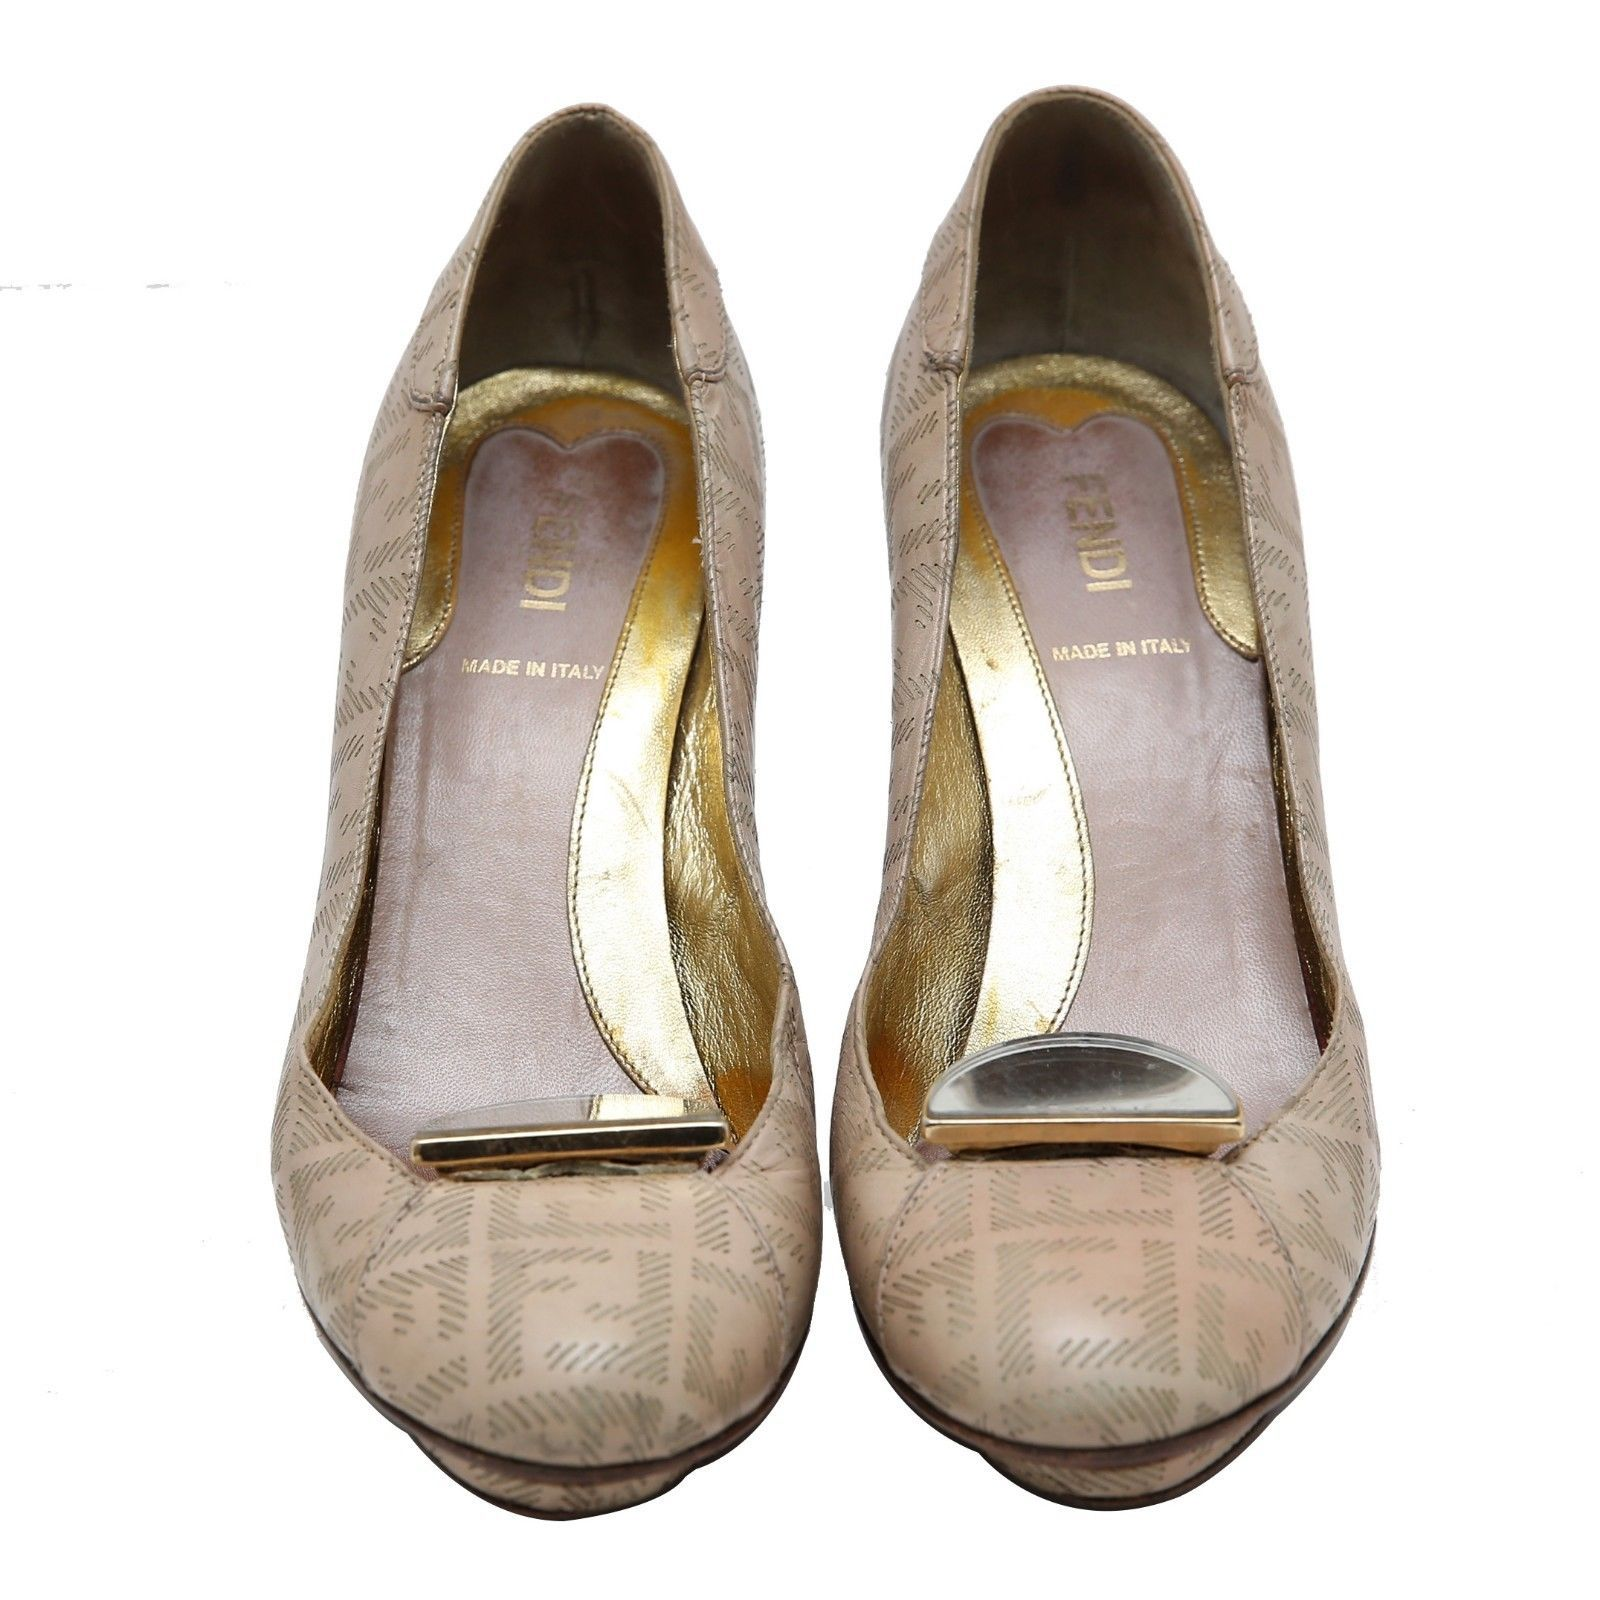 Primary image for Authentic FENDI Nude Pink Monogram Leather Pumps Slip On Size 37 US 6.5 UK 4